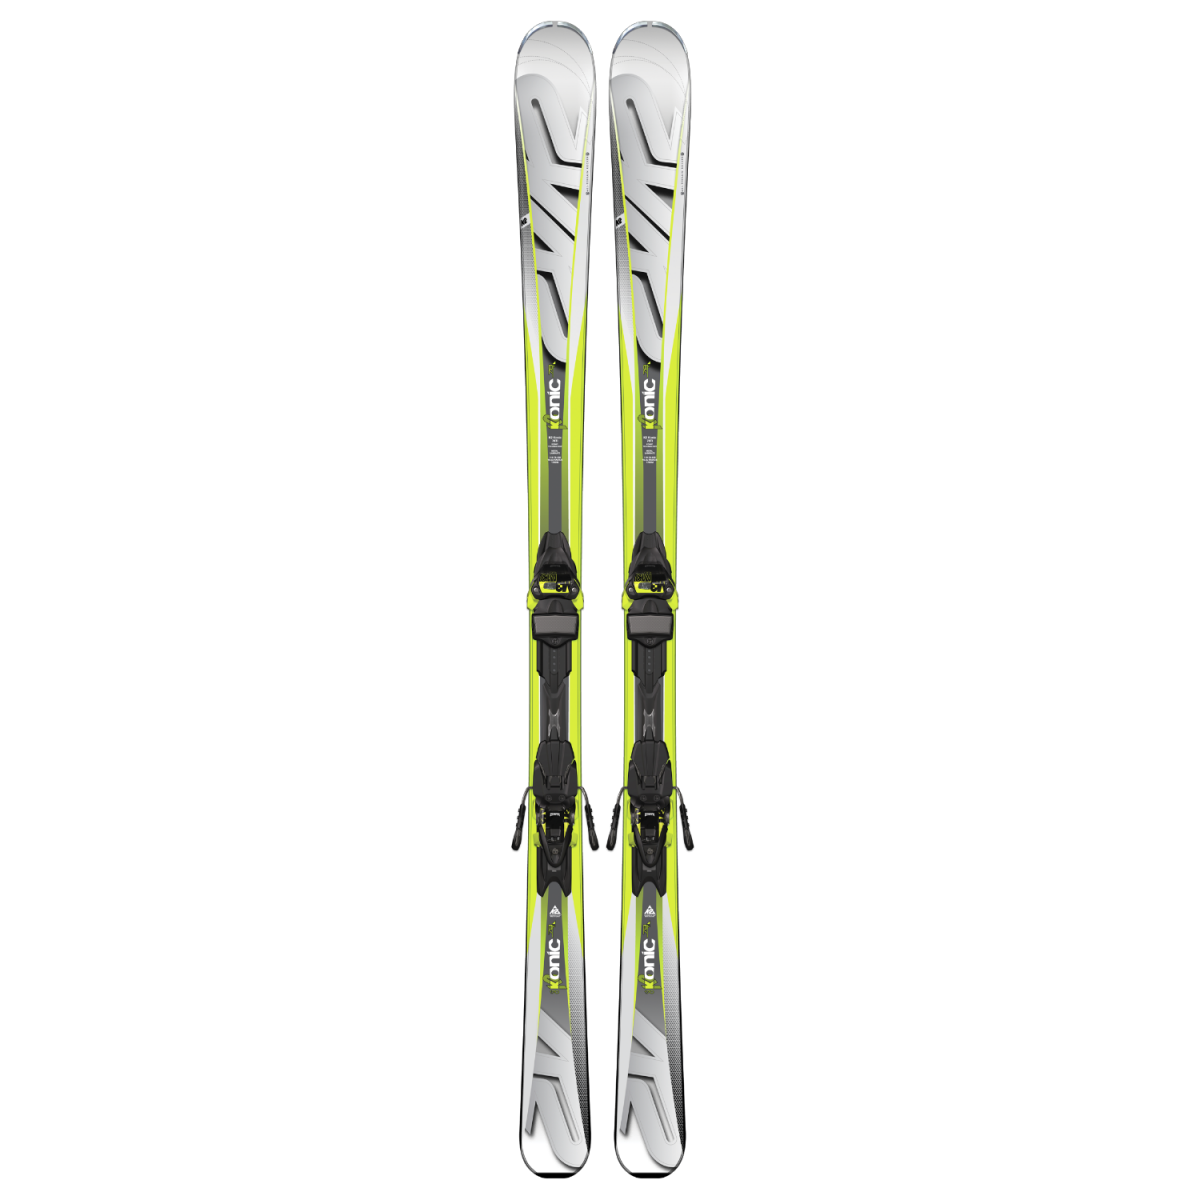 K2 Konic 78 TI Skis with M3 10 Bindings '15/16 from